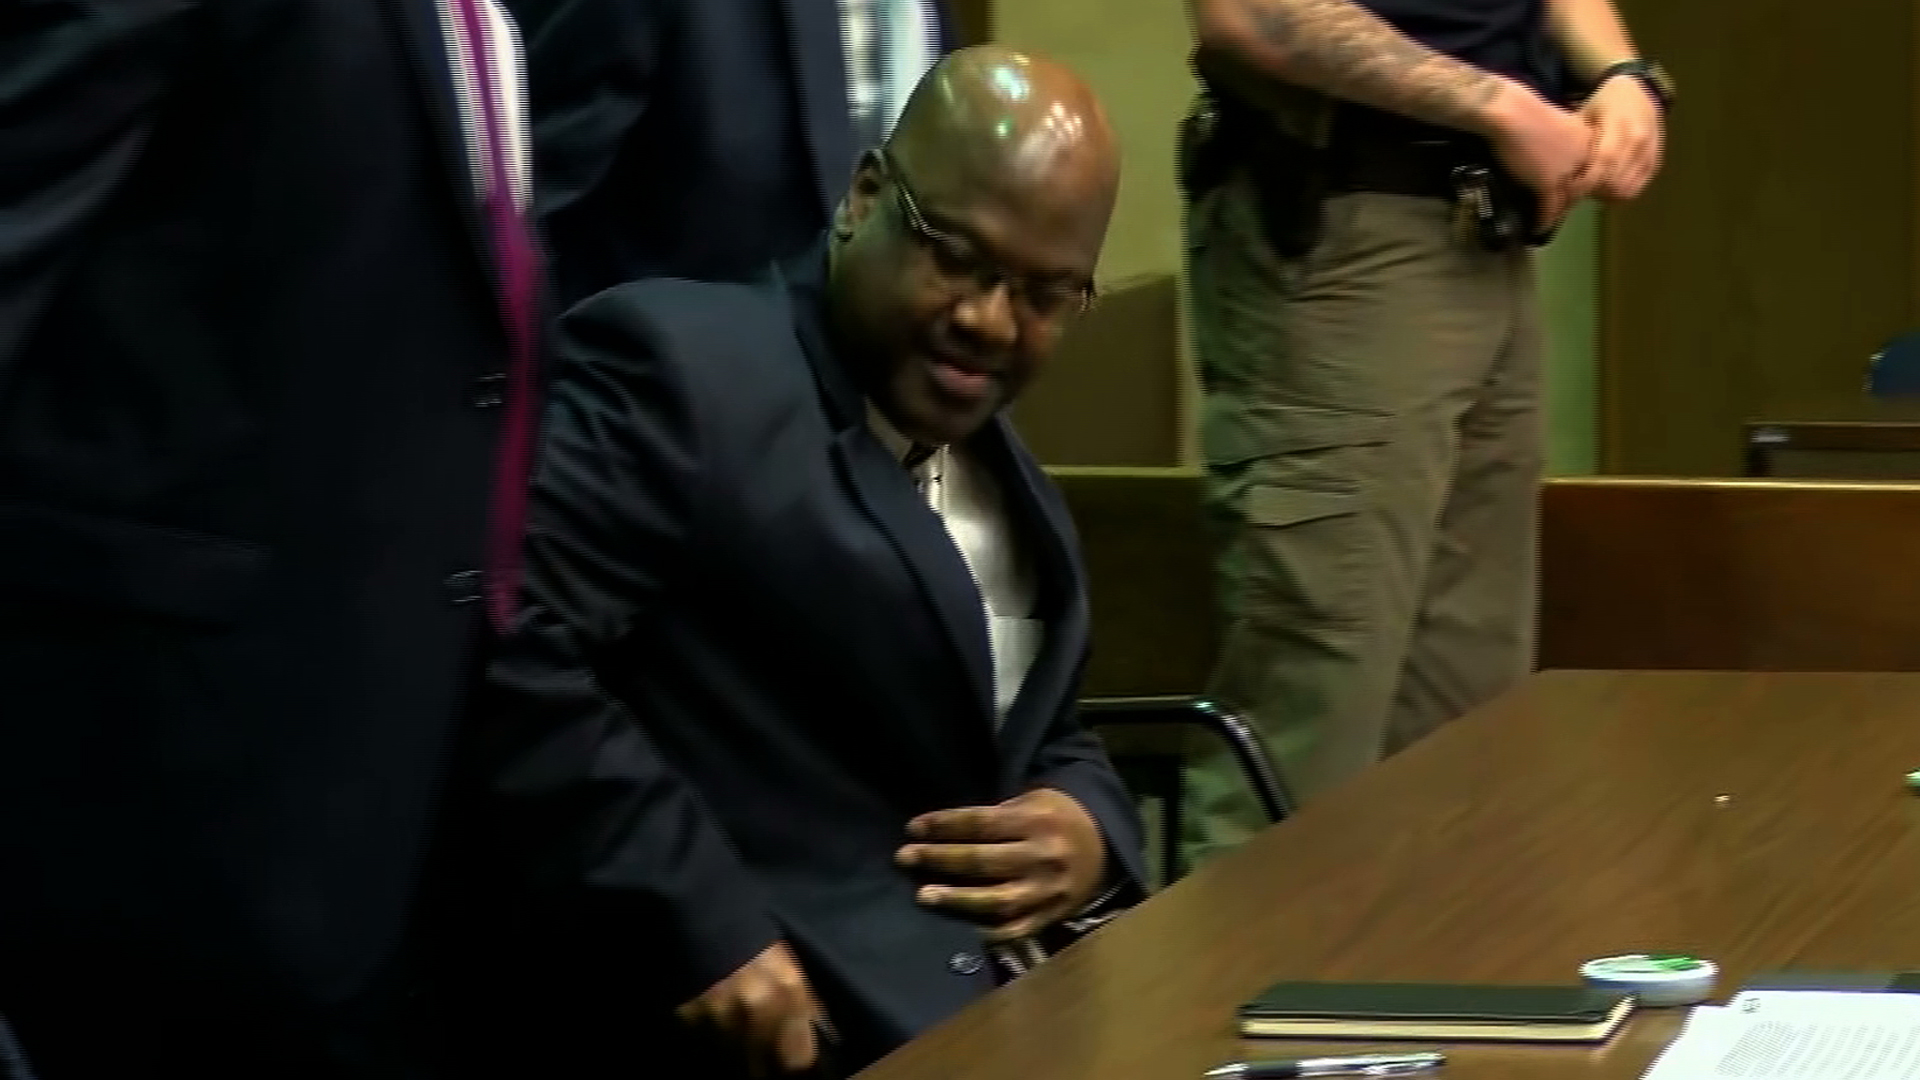 Curtis Flowers appears for a bail hearing in a Winona, Mississippi, courtroom on Dec. 16, 2019. (Credit: WLBT via CNN)